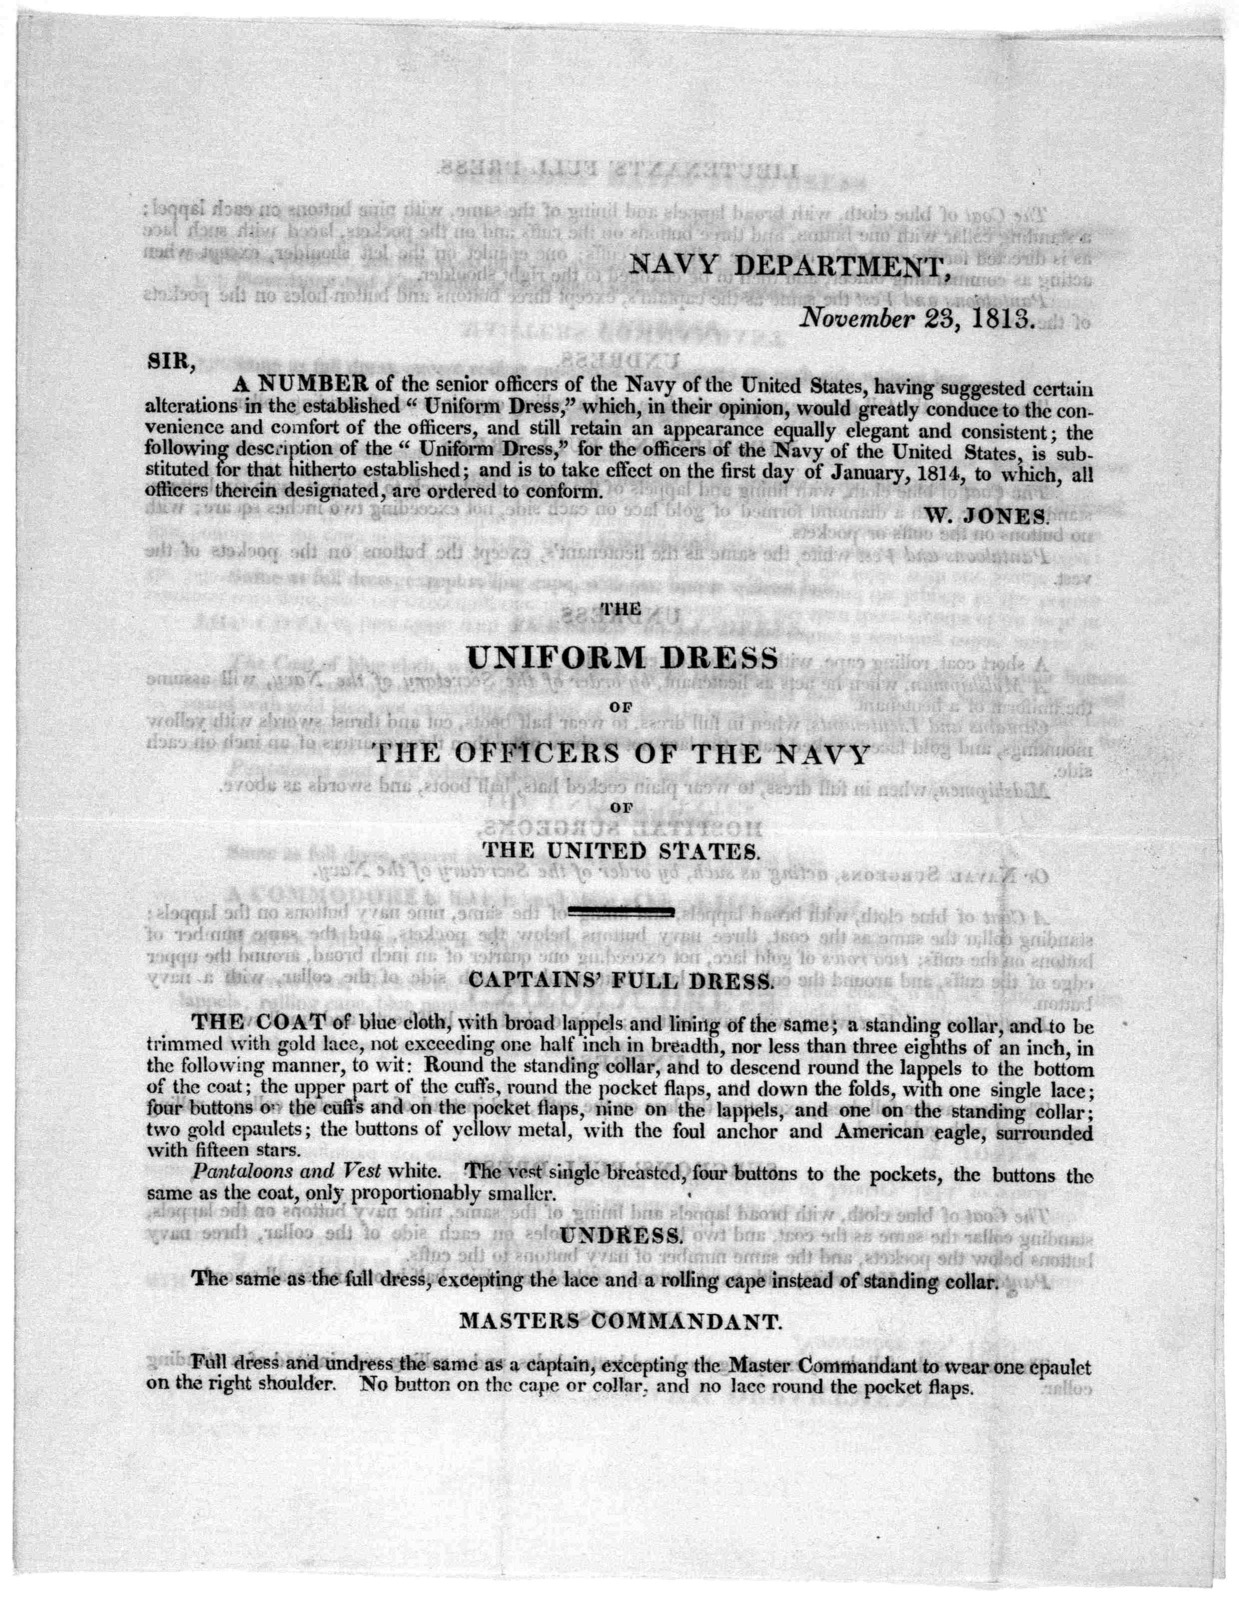 """Navy Department. November 23, 1813. Sir A number of the senior officers of the Navy of the United States having suggested certain alterations in the established """"Uniform dress,"""" ... the following description of the """"Uniform dress"""" ... is to take"""